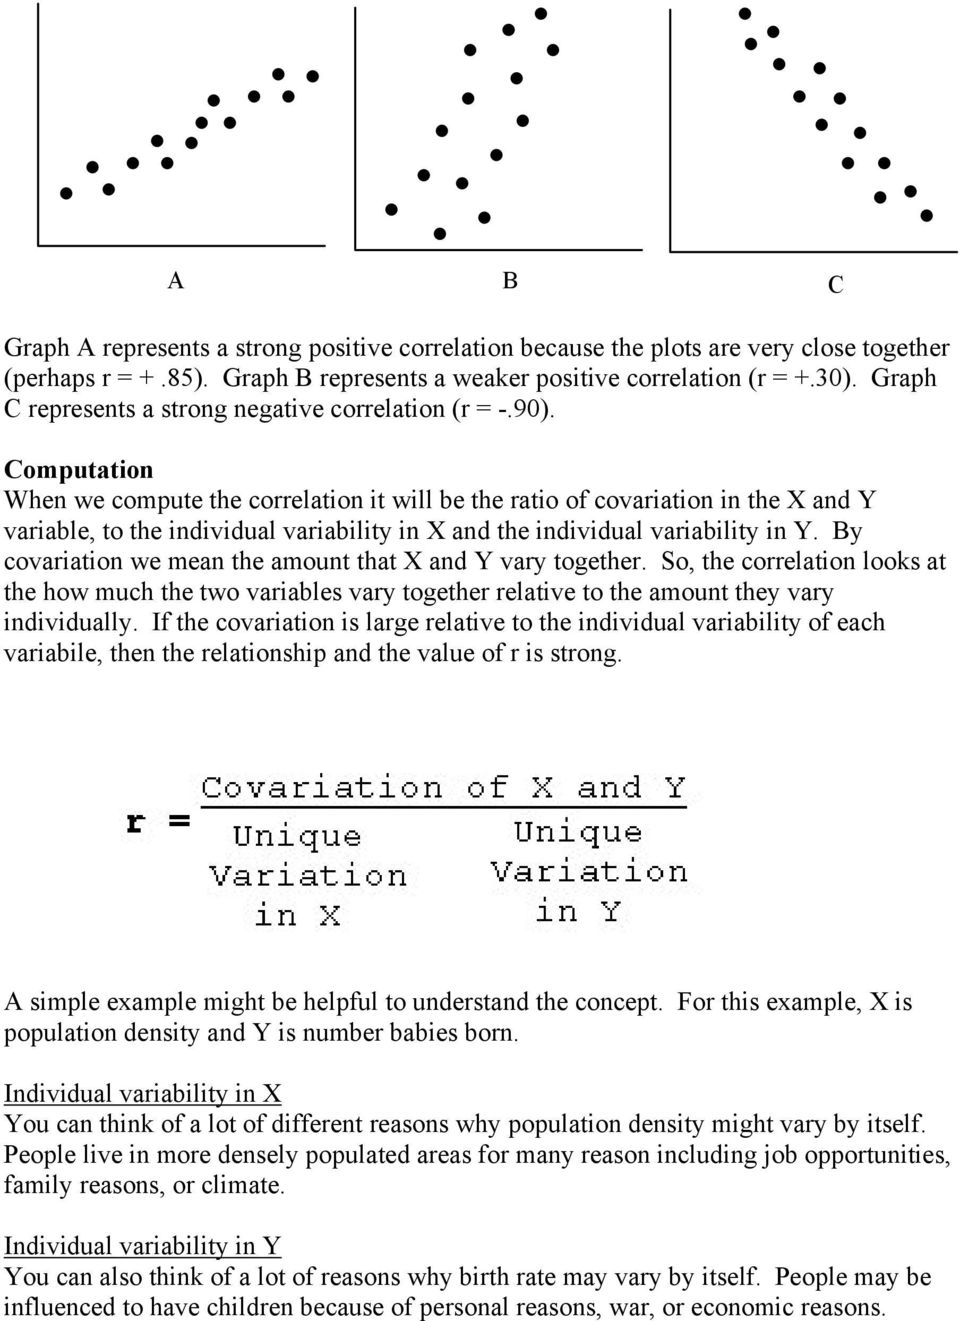 Computatio Whe we compute the correlatio it will be the ratio of covariatio i the X ad Y variable, to the idividual variability i X ad the idividual variability i Y.